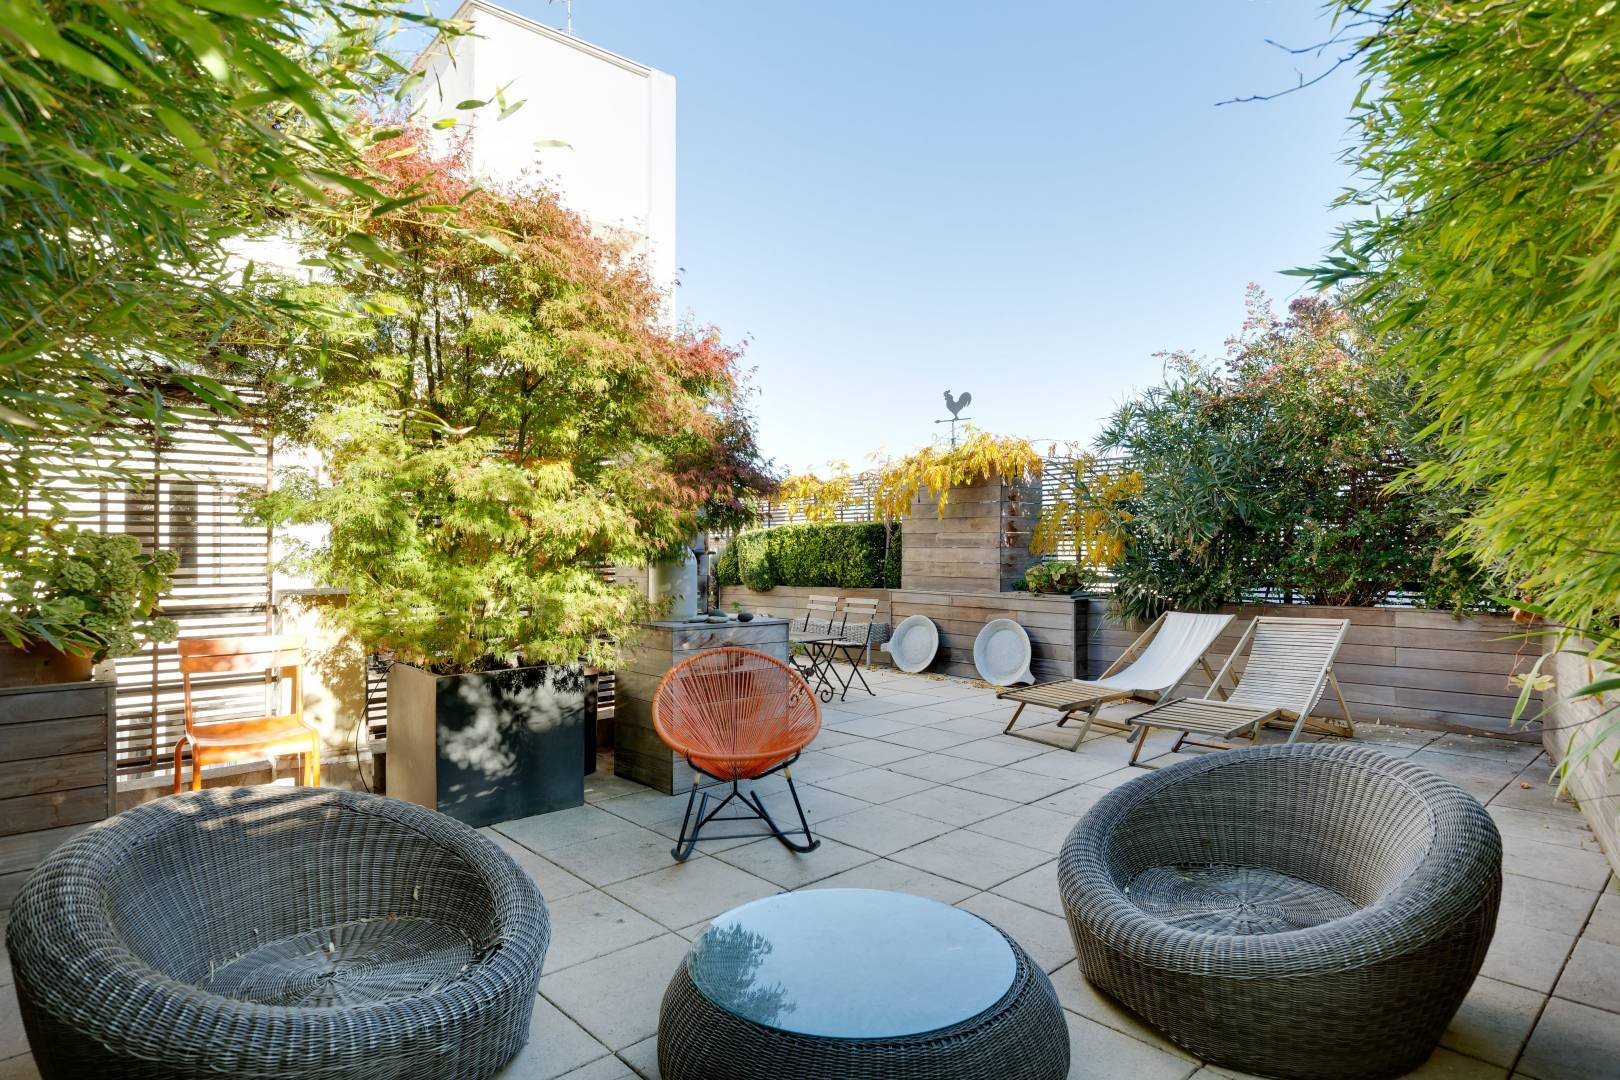 Real Estate - Even without foreign buyers, luxury real estate is blossoming in Paris